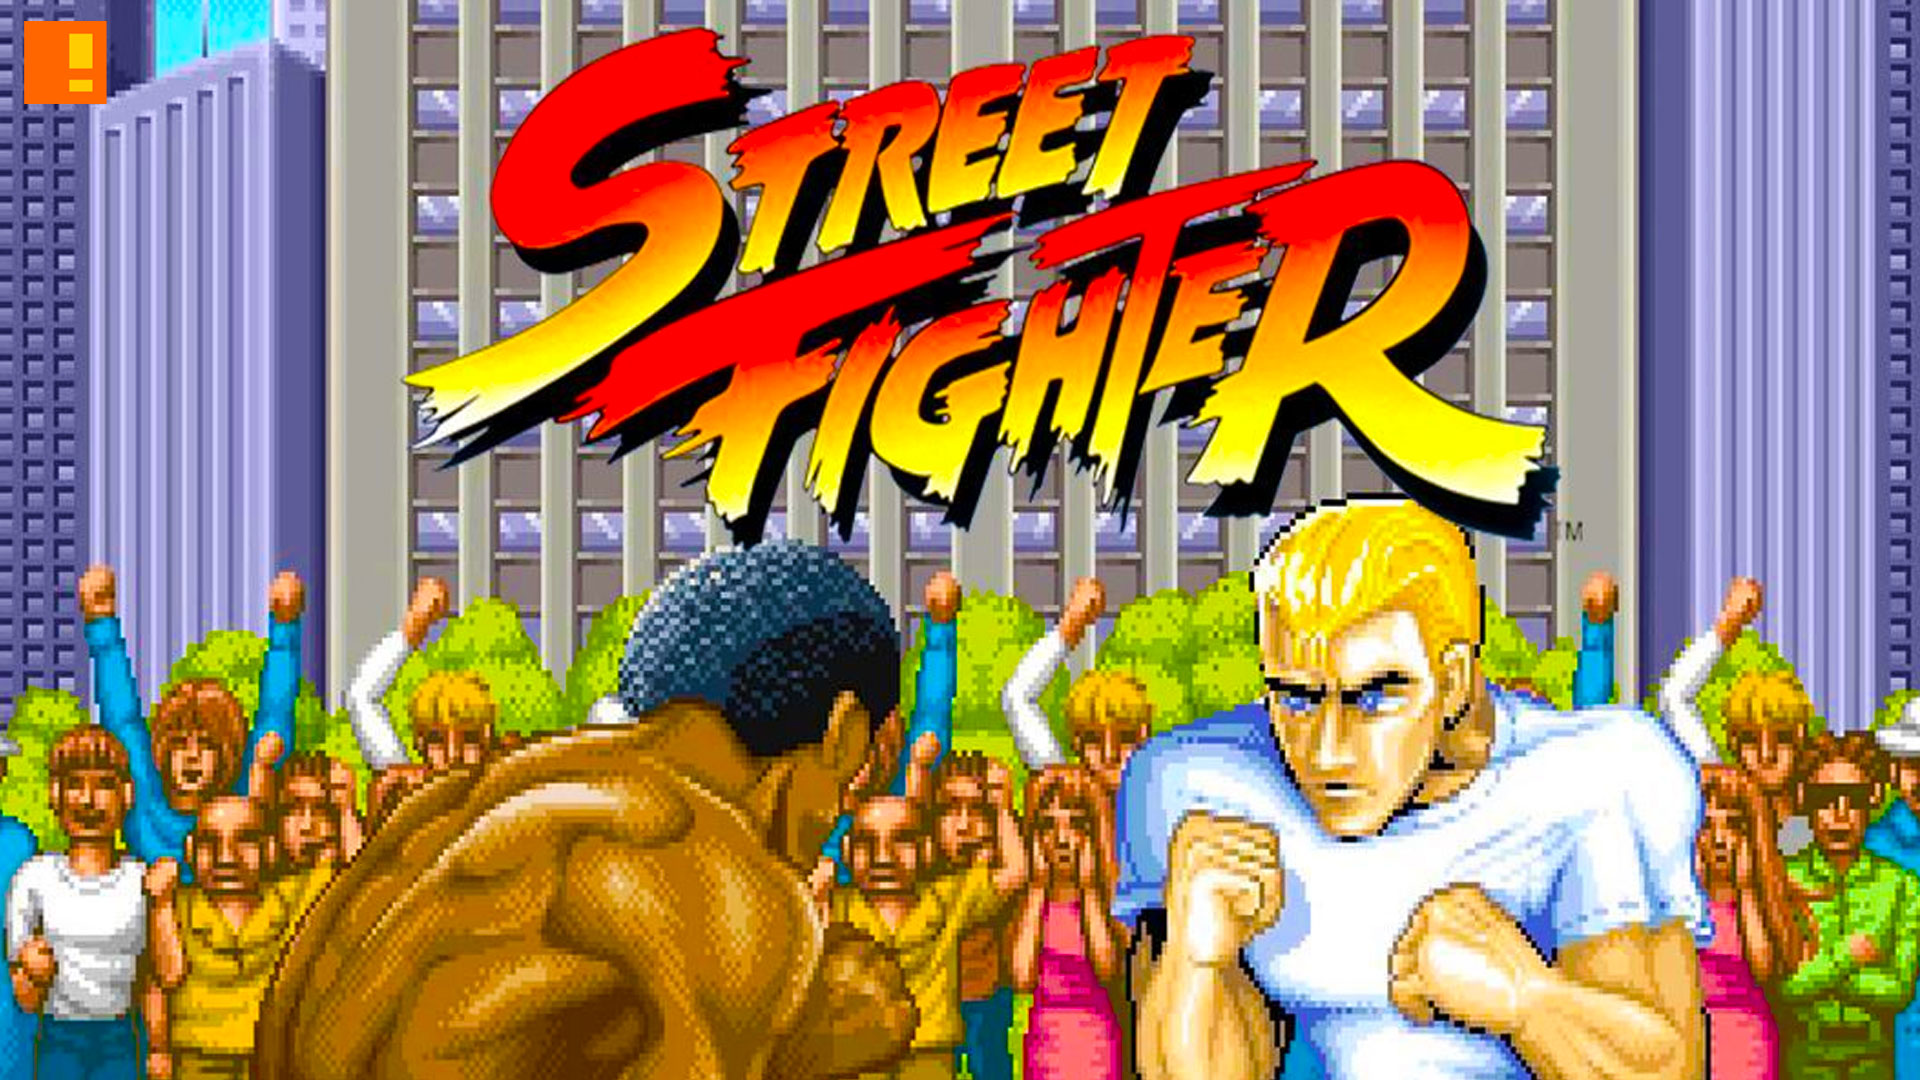 street fighter, mystery fighter, the action pixel, entertainment on tap, street fighter 2, street fighter, max, scott, the action pixel